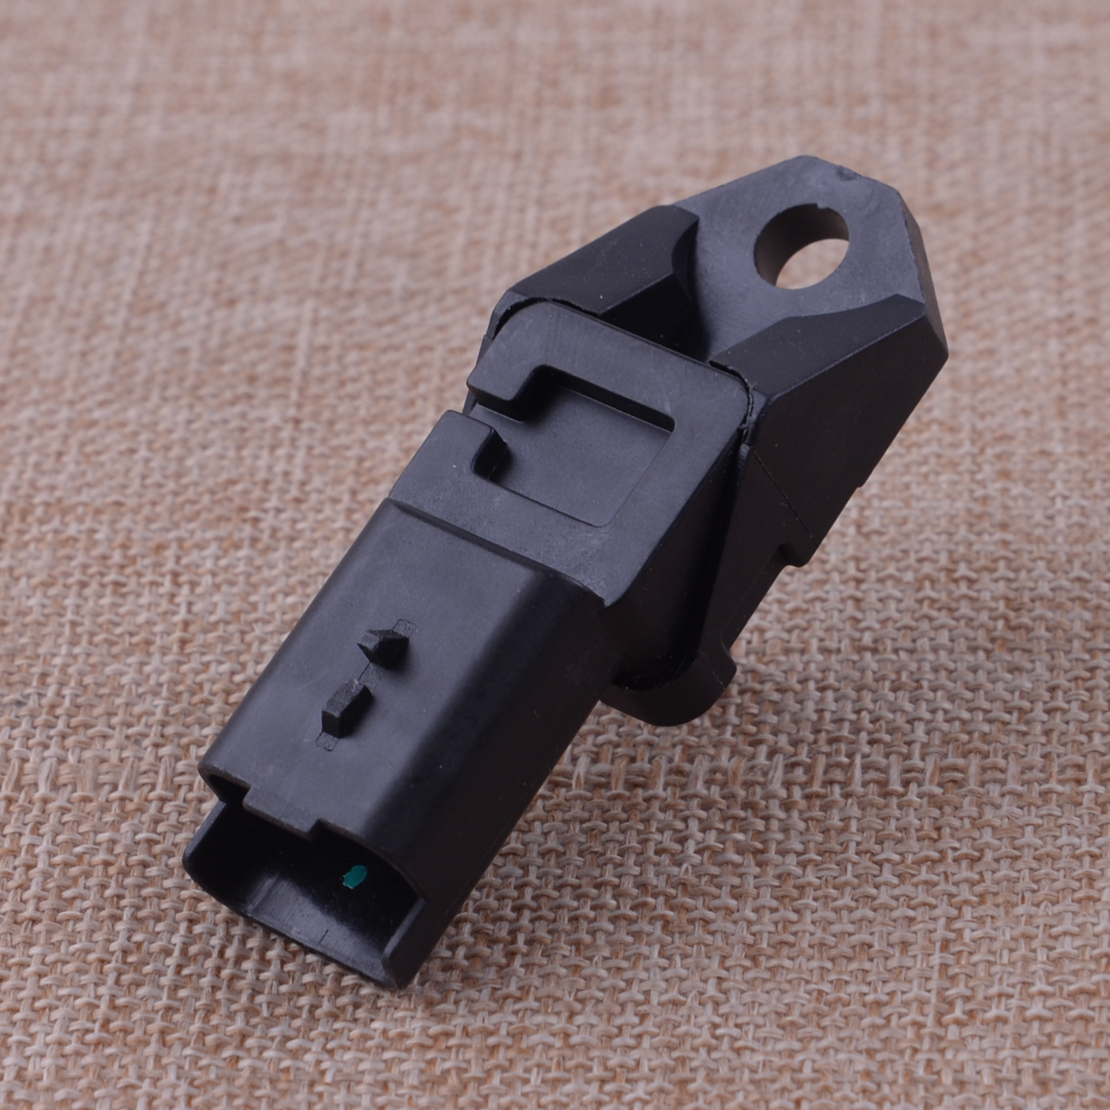 CITALL 3 Pins Black Plastic <font><b>Turbo</b></font> Boost Pressure MAP Sensor 9639469280 1231463 Fit for <font><b>Peugeot</b></font> 1007 206 307 <font><b>407</b></font> 1.6 <font><b>2.0</b></font> <font><b>HDI</b></font> image